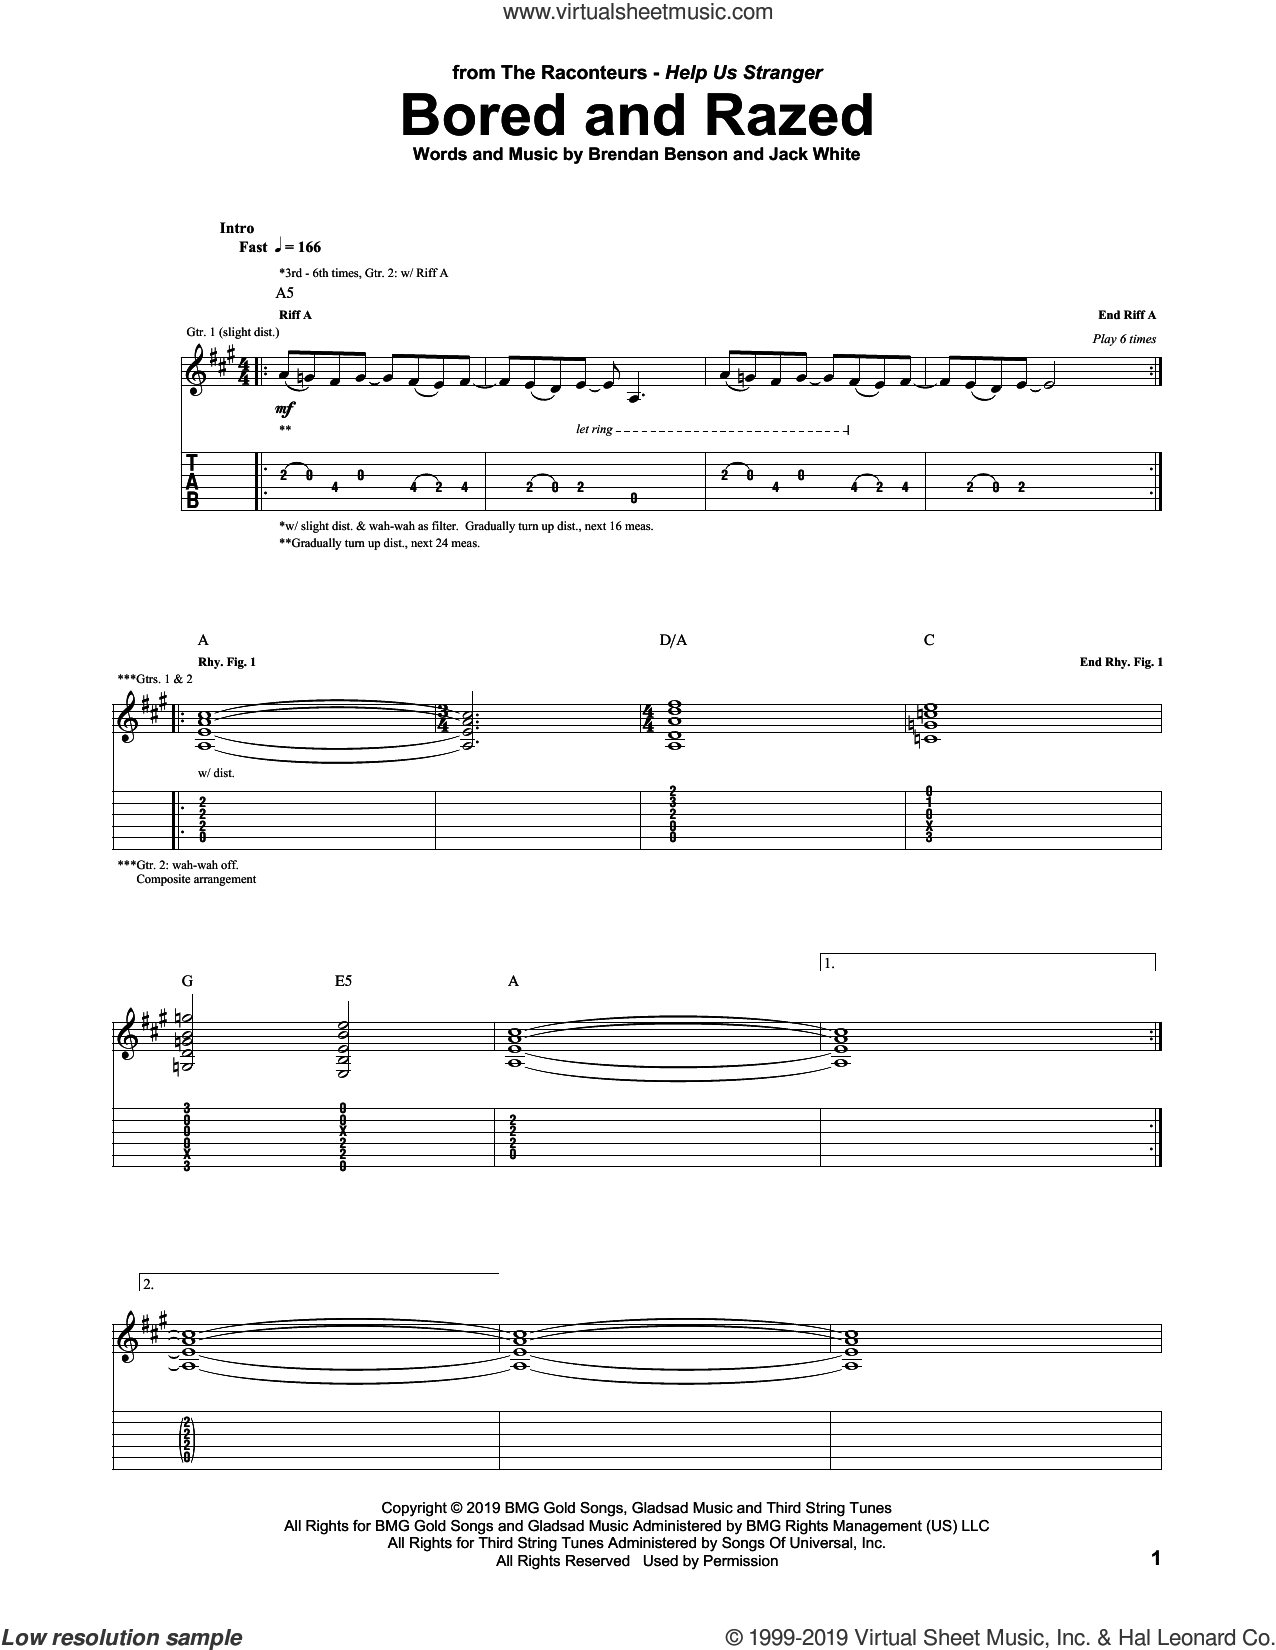 Bored And Razed sheet music for guitar (tablature) by The Raconteurs, Brendan Benson and Jack White, intermediate skill level